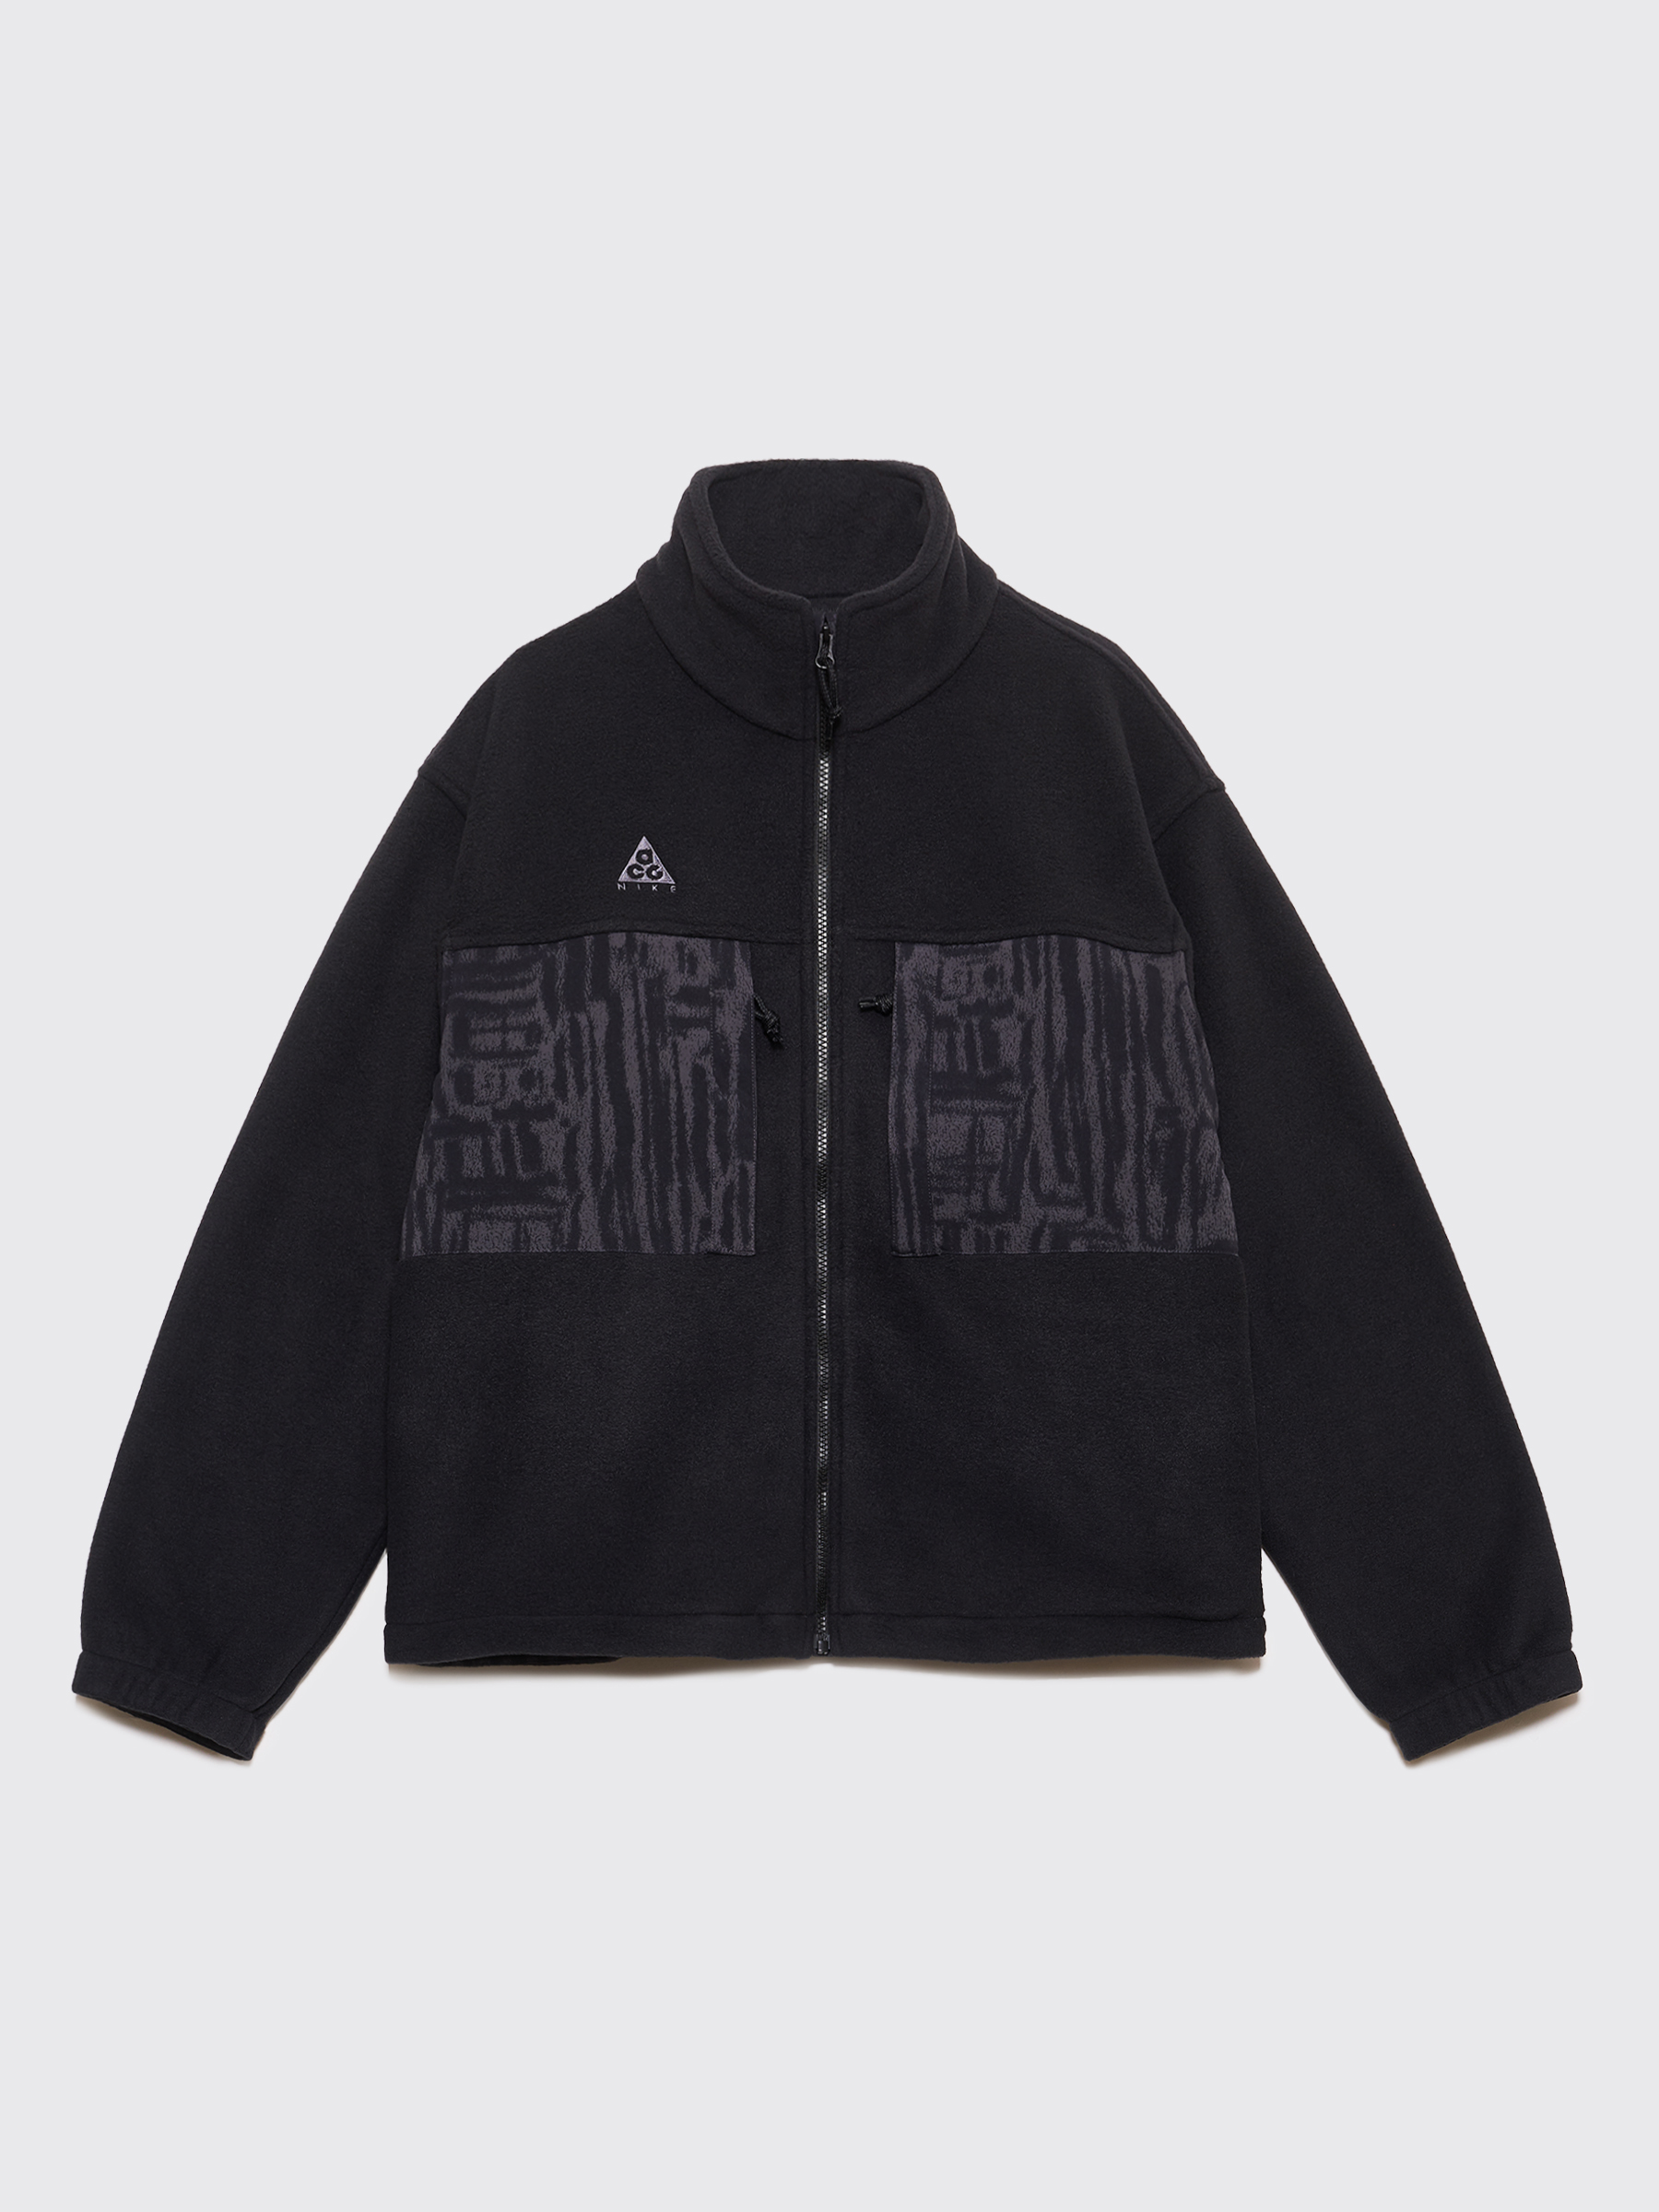 0c8e2e4daa2b Très Bien - Nike ACG Fleece Jacket Black   Anthracite